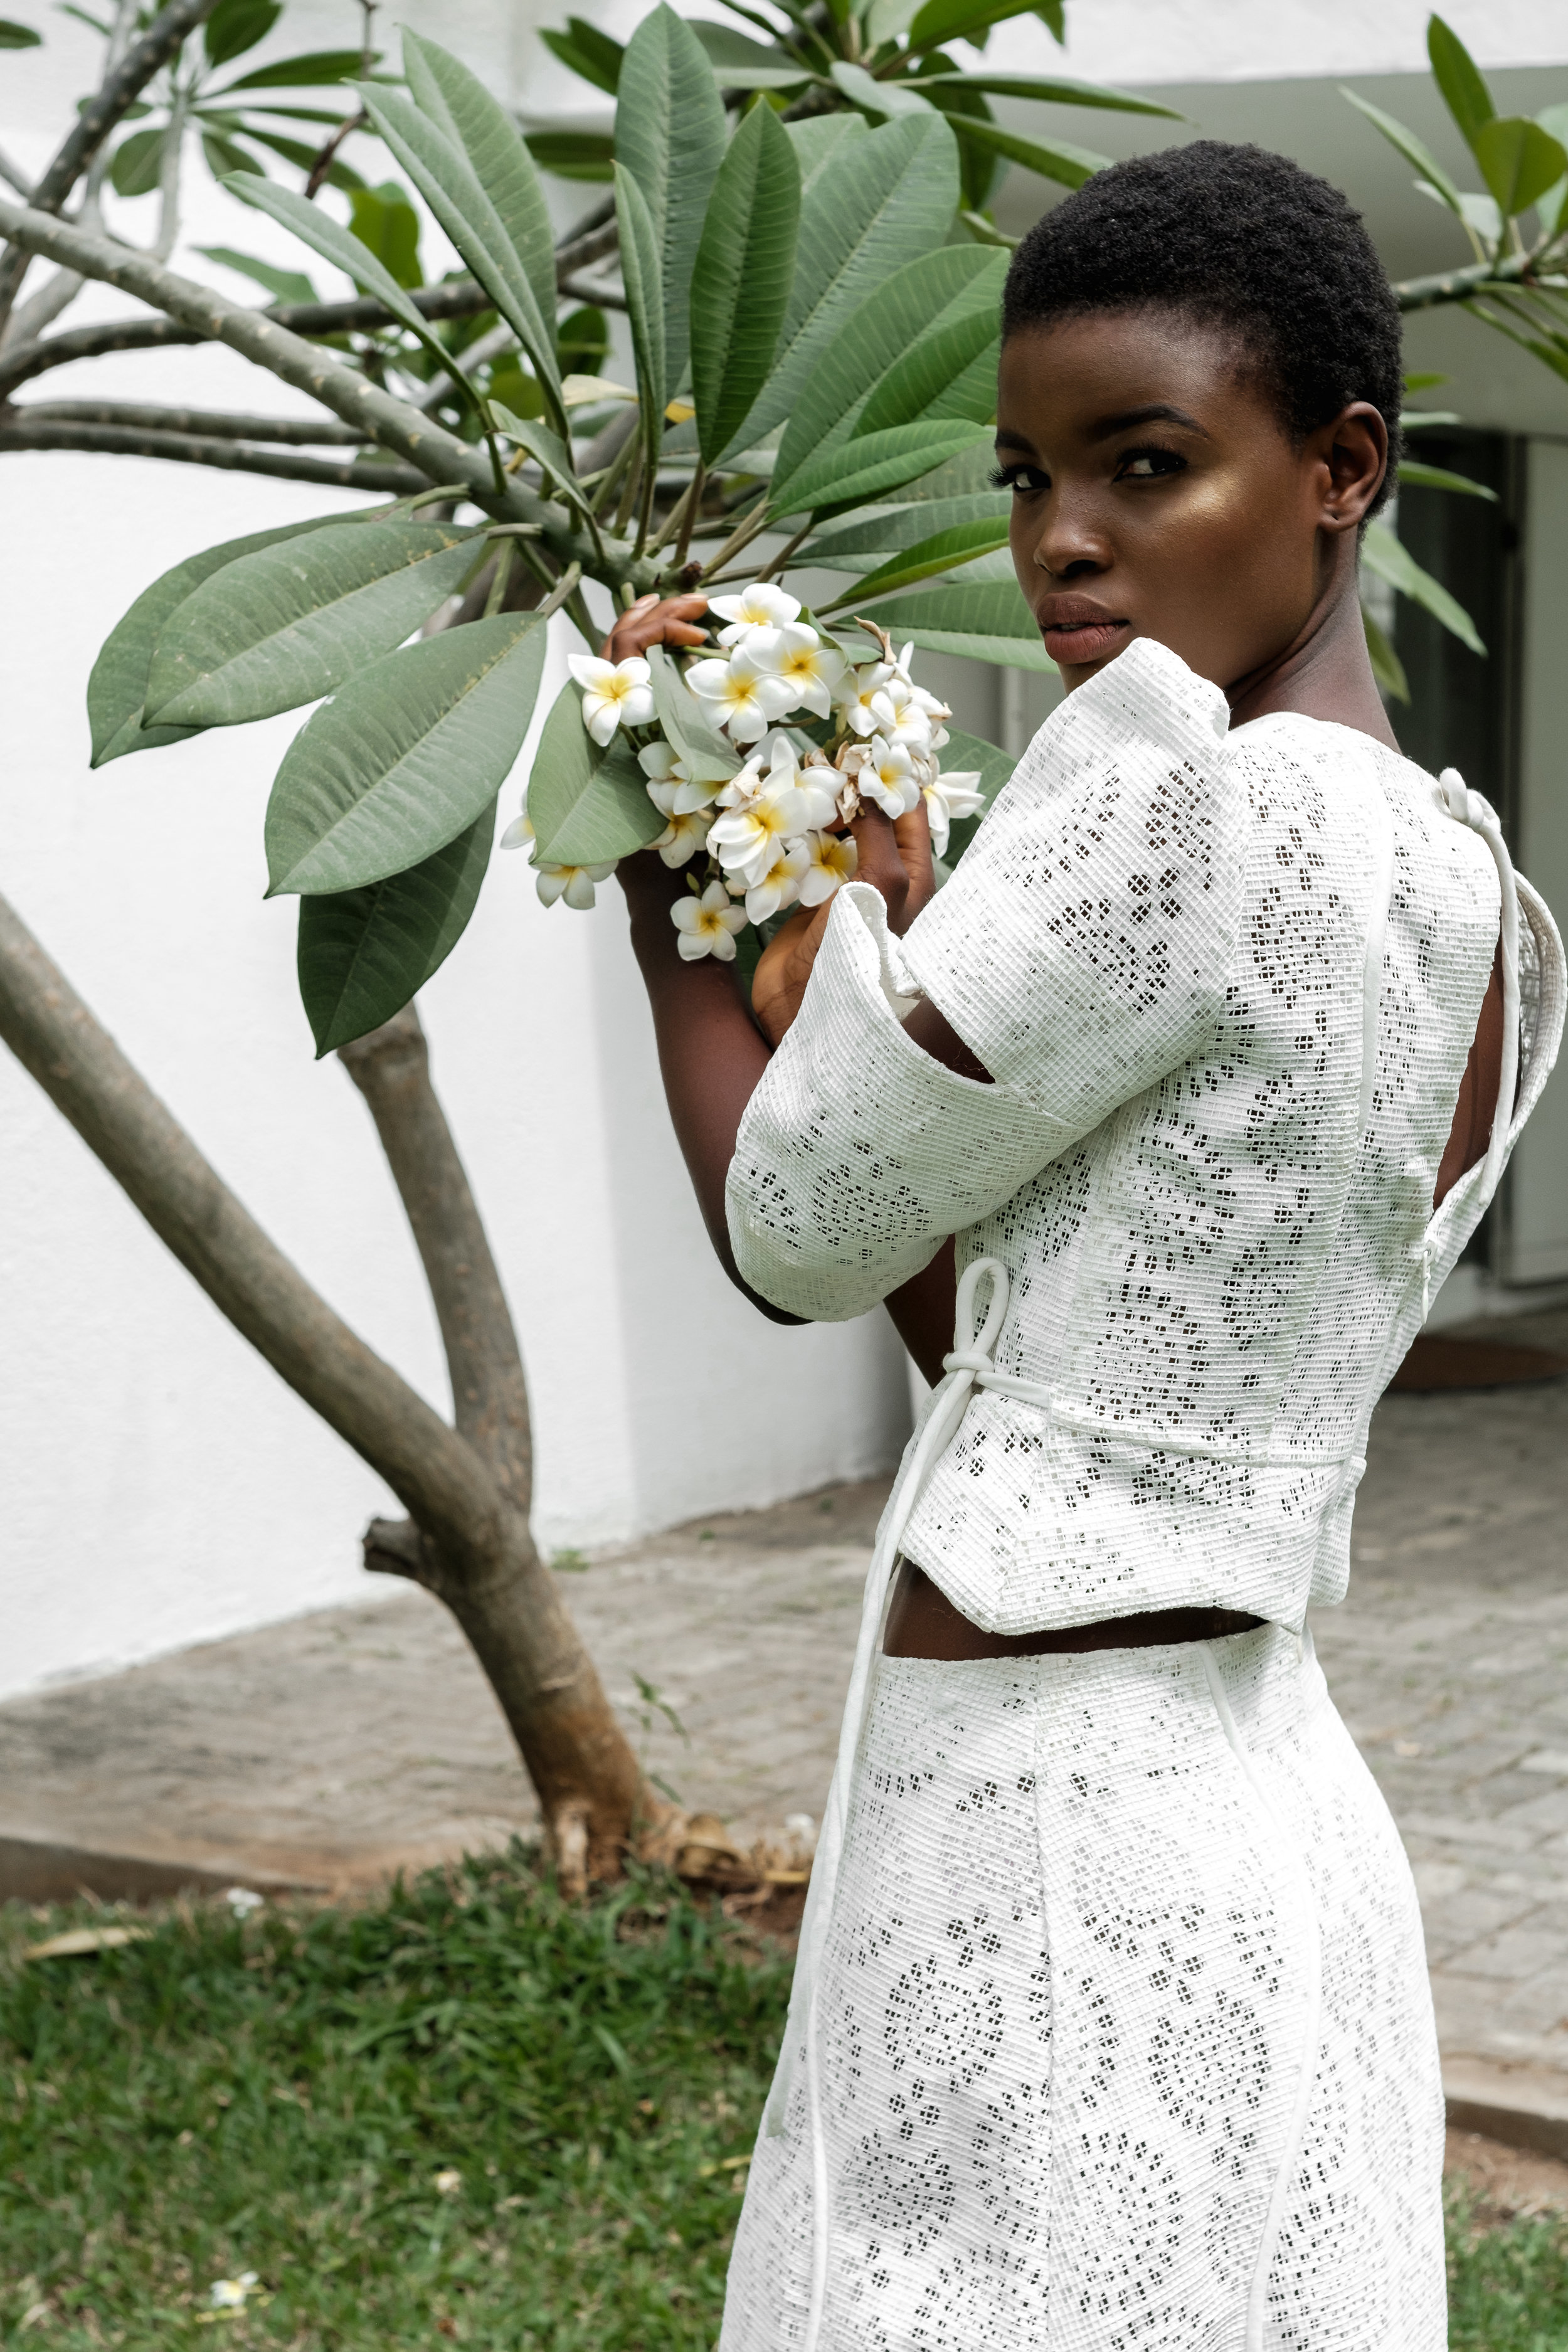 DSCF2537 MEENA SS18 WHITE LACE CROP TOP WITH SLIT SLEEVE DETAILS AND MEENA SS18 WHITE LACE MIDI SKIRT2.jpg